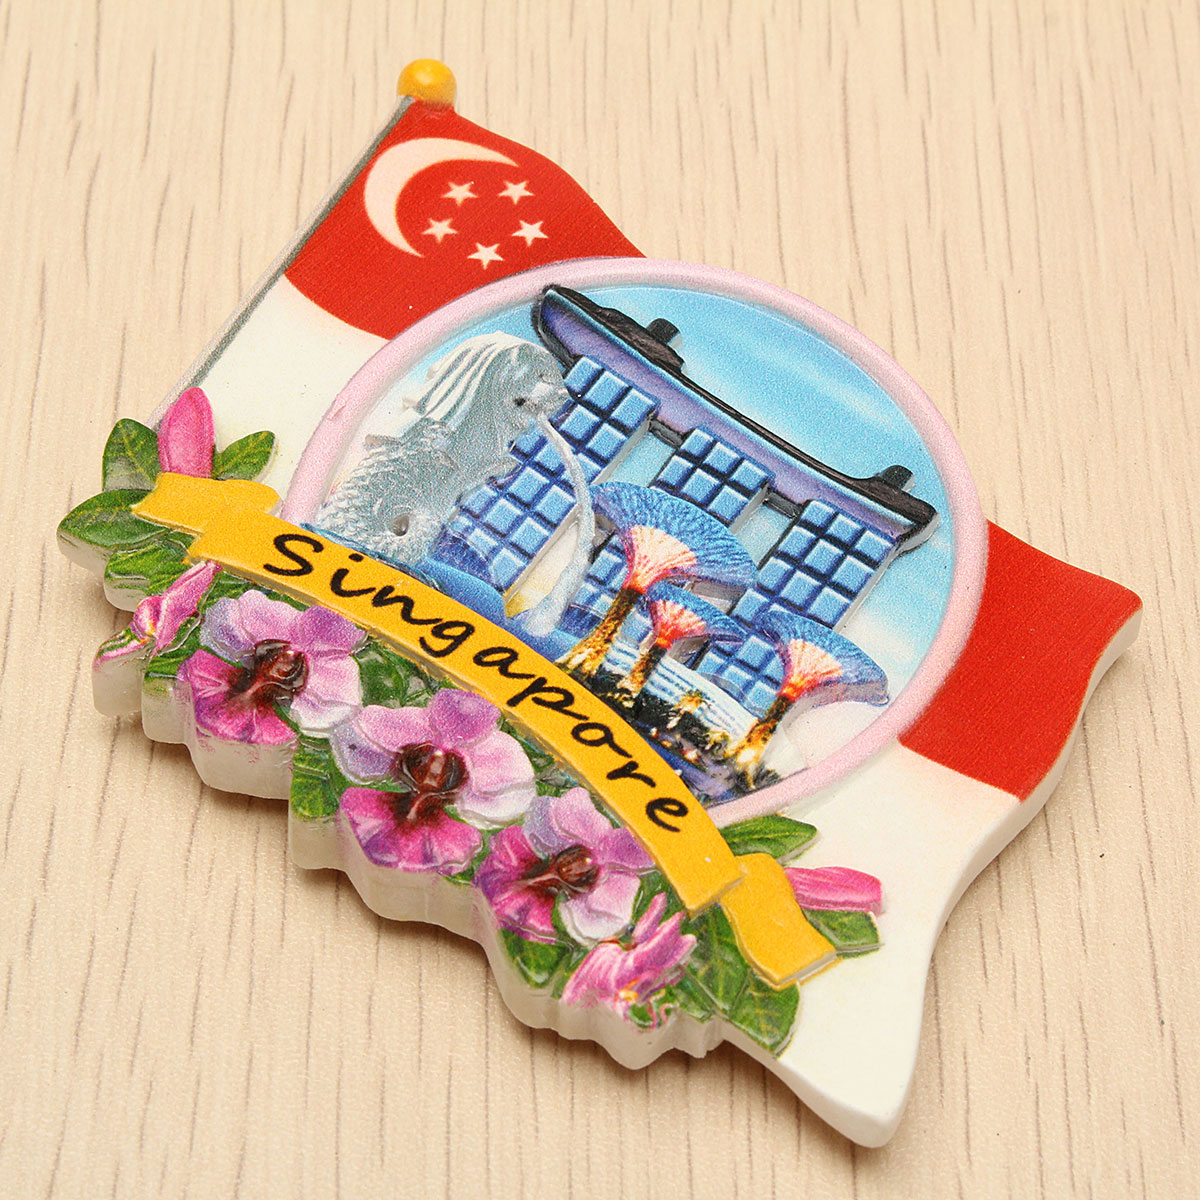 Tourist Souvenir Favorite Travel Resin 3D Fridge Magnet Colorful-Singapore - Photo: 3